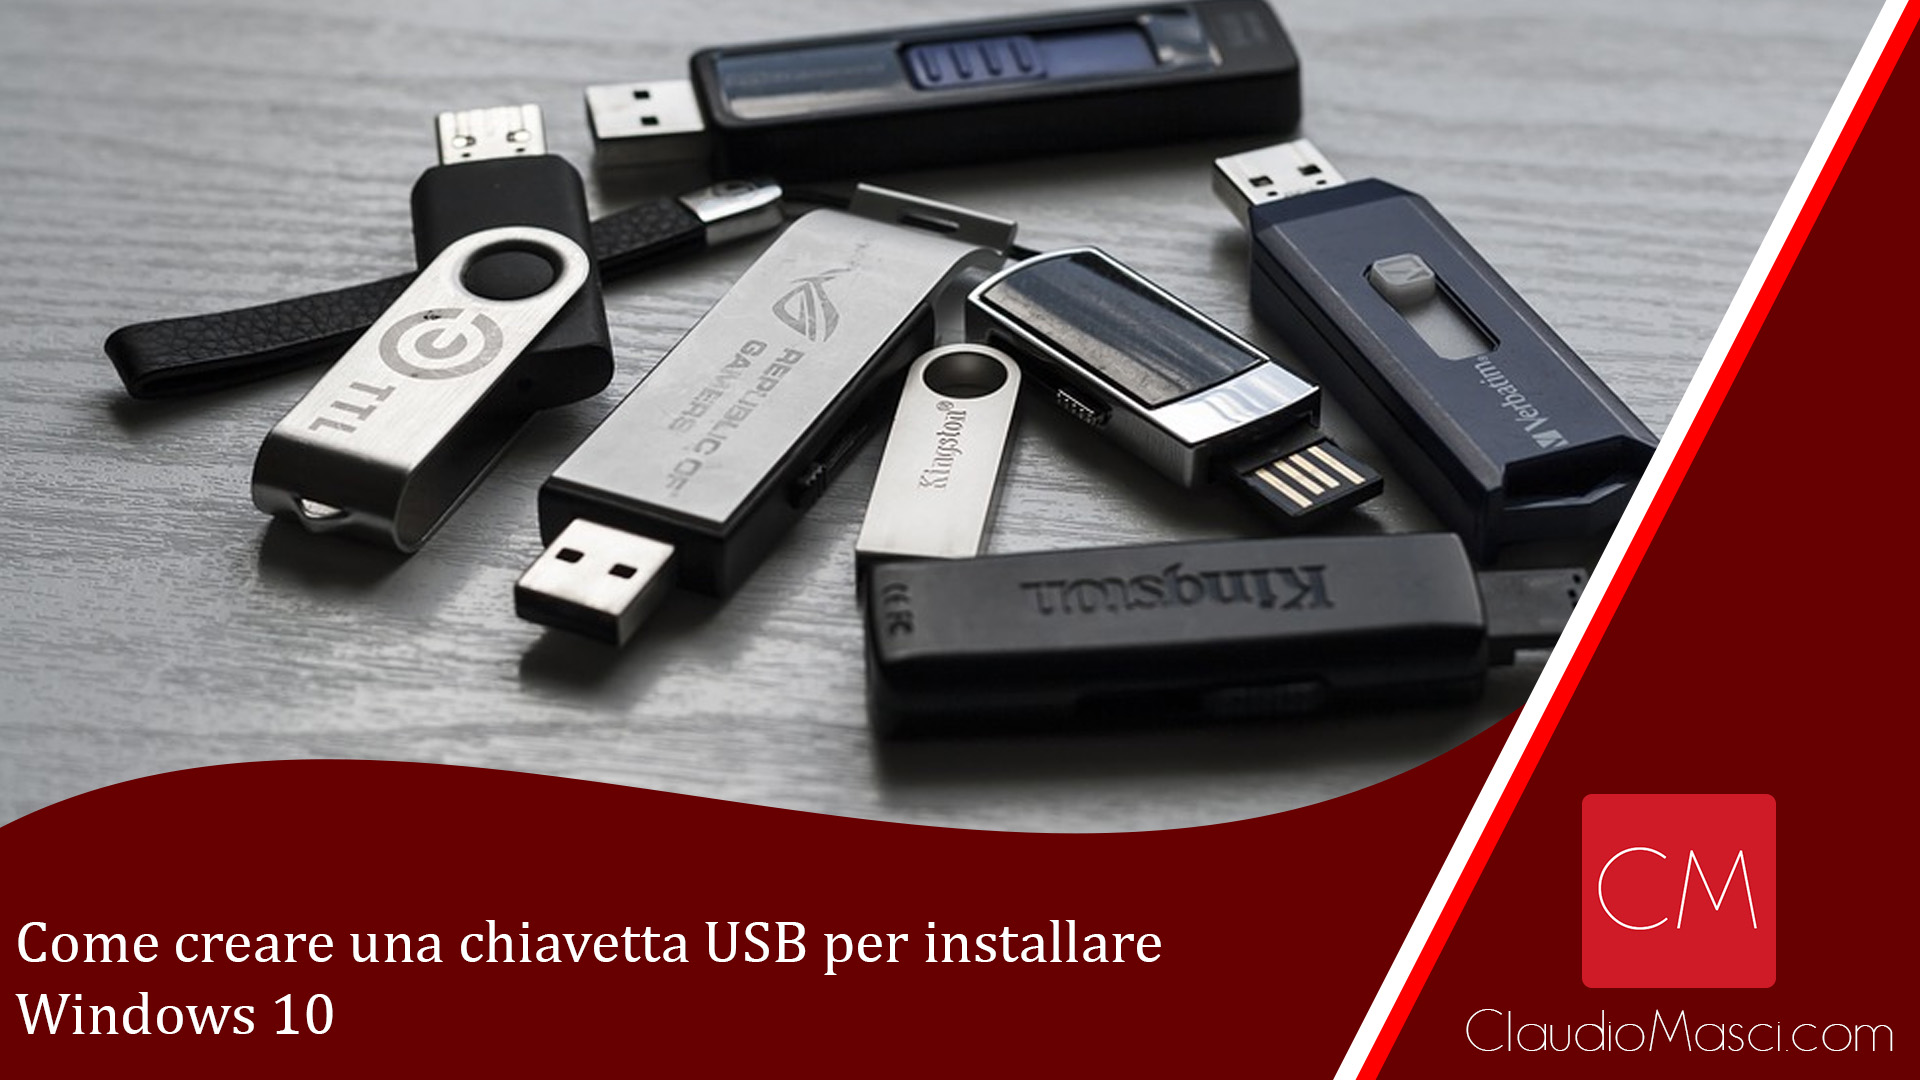 Come creare una chiavetta USB per installare Windows 10